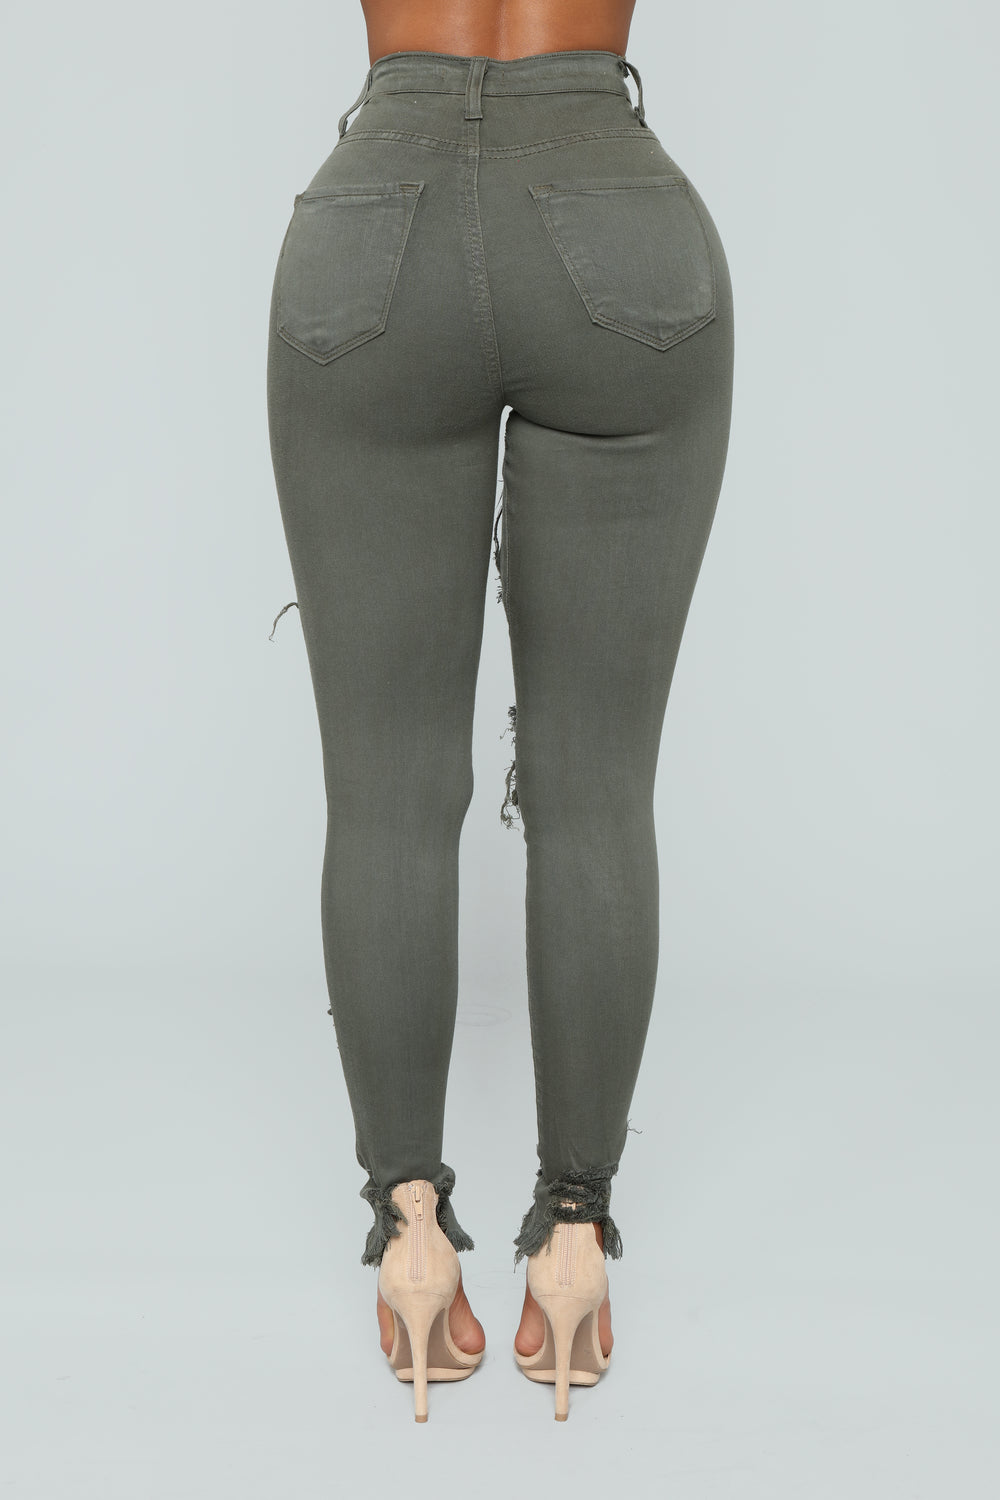 Take Back Home Girl Skinny Jeans - Olive